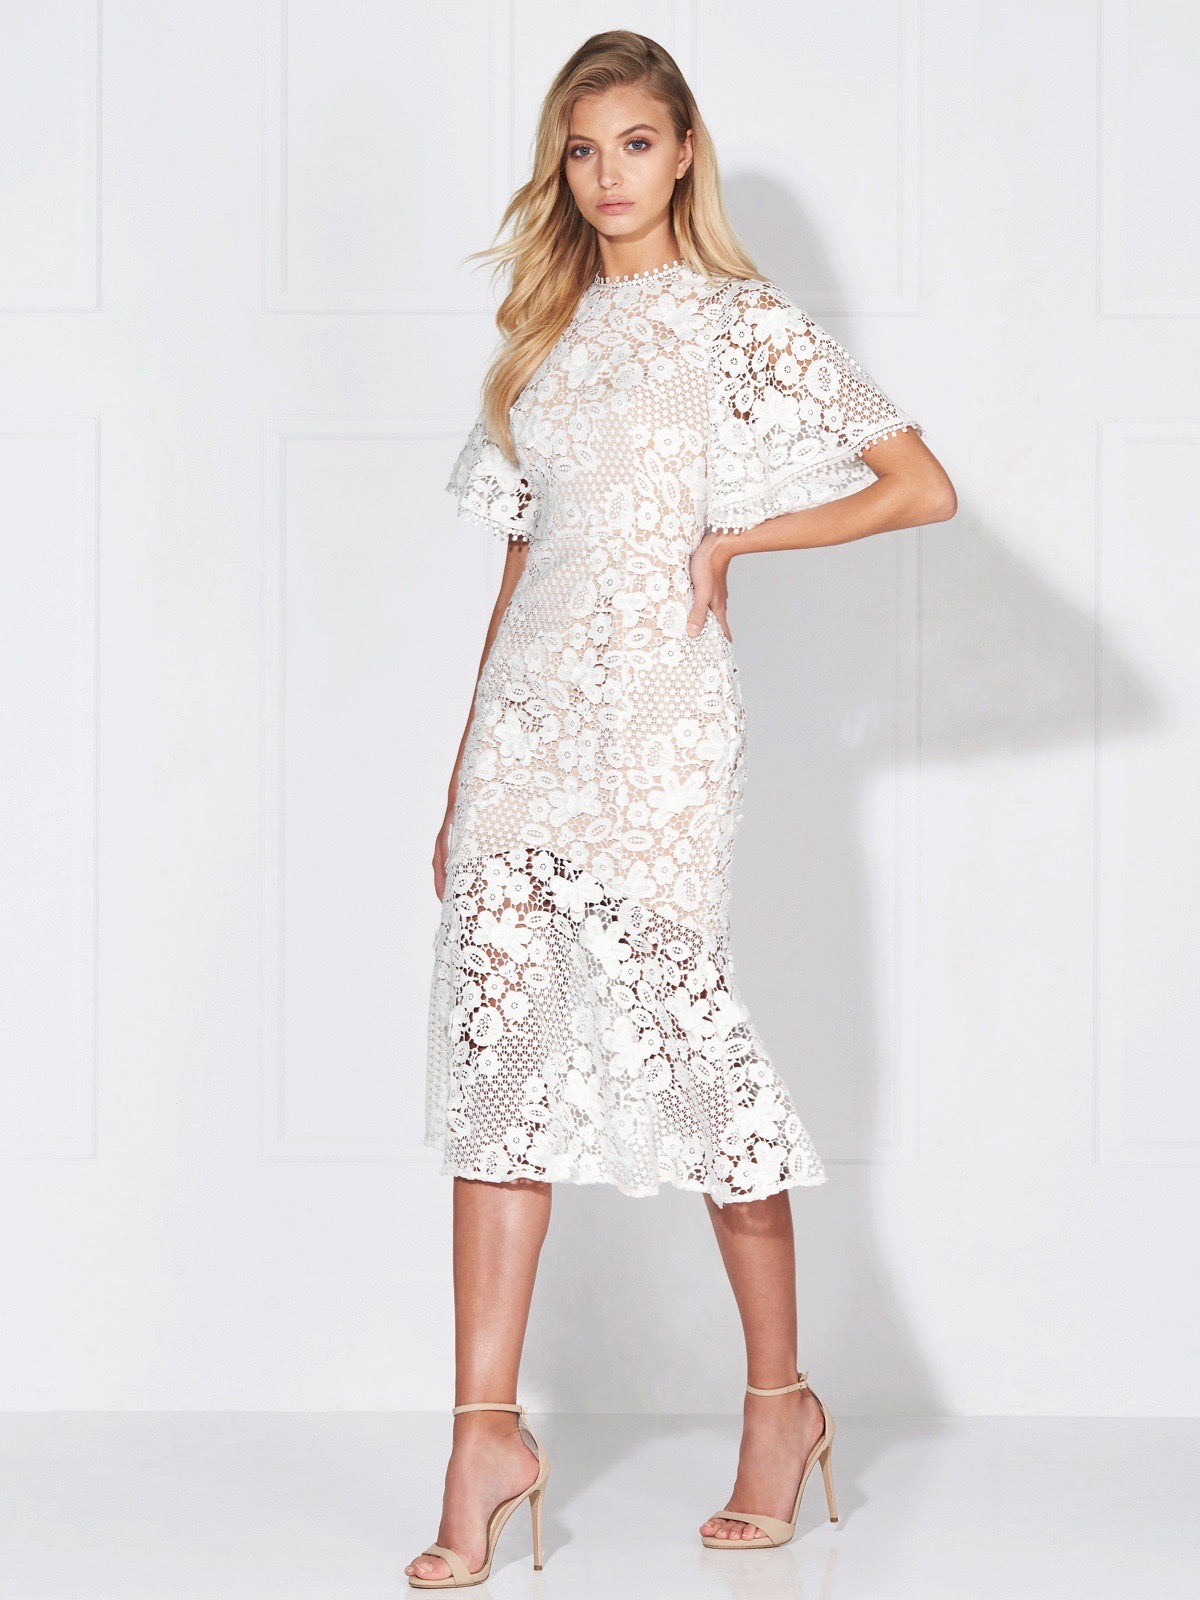 Ivory Lace Dresses for Women